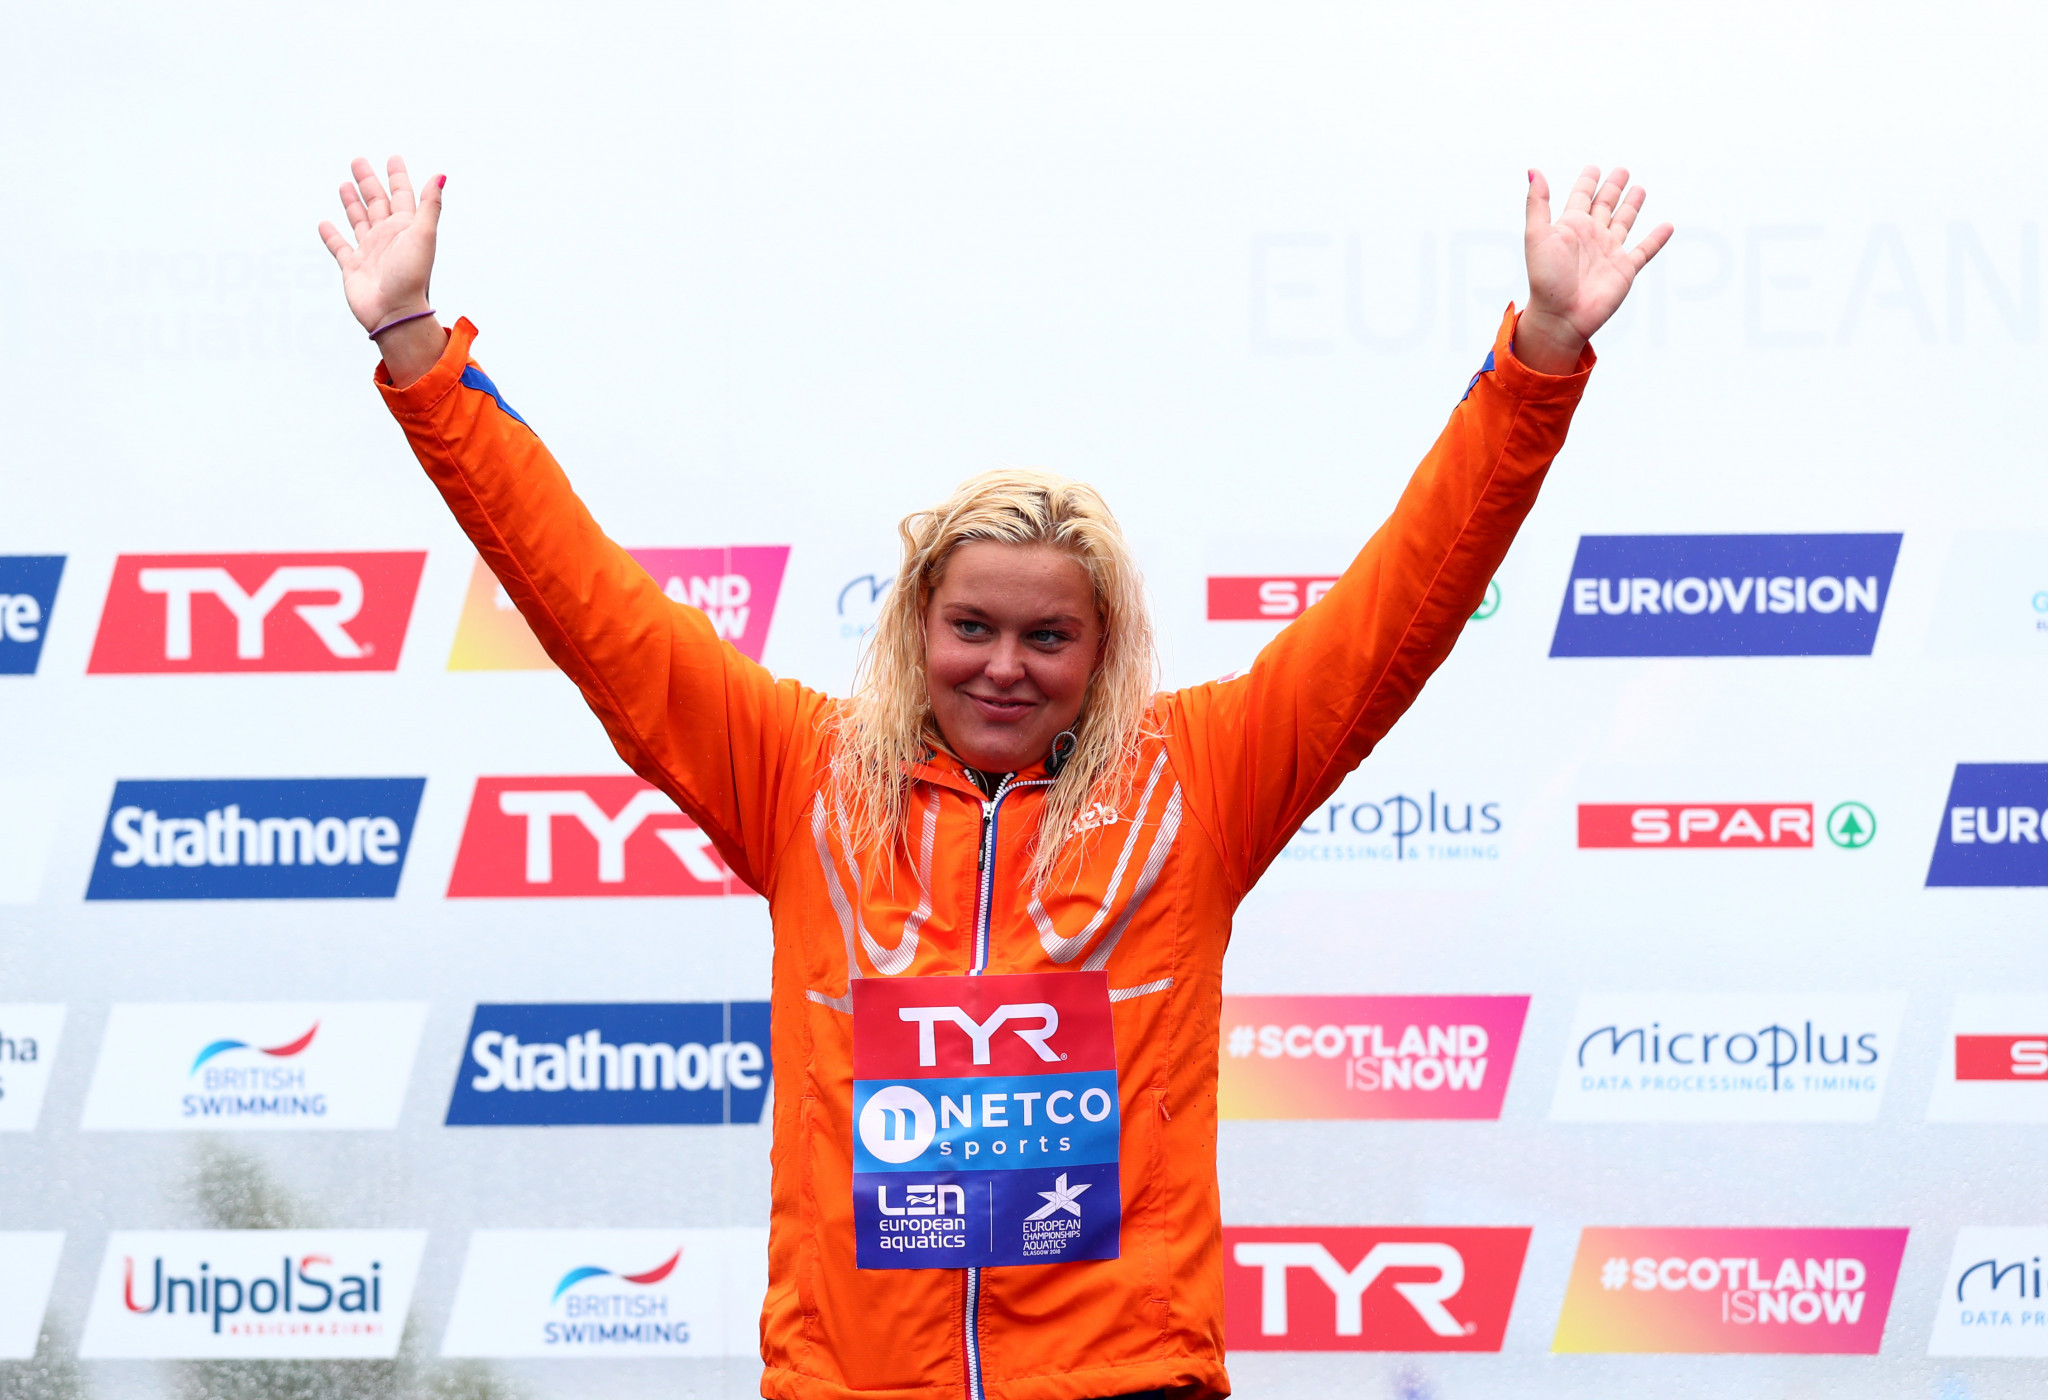 The winner of last year's race in Doha, Sharon van Rouwendaal of The Netherlands, is back to defend her title ©Getty Images